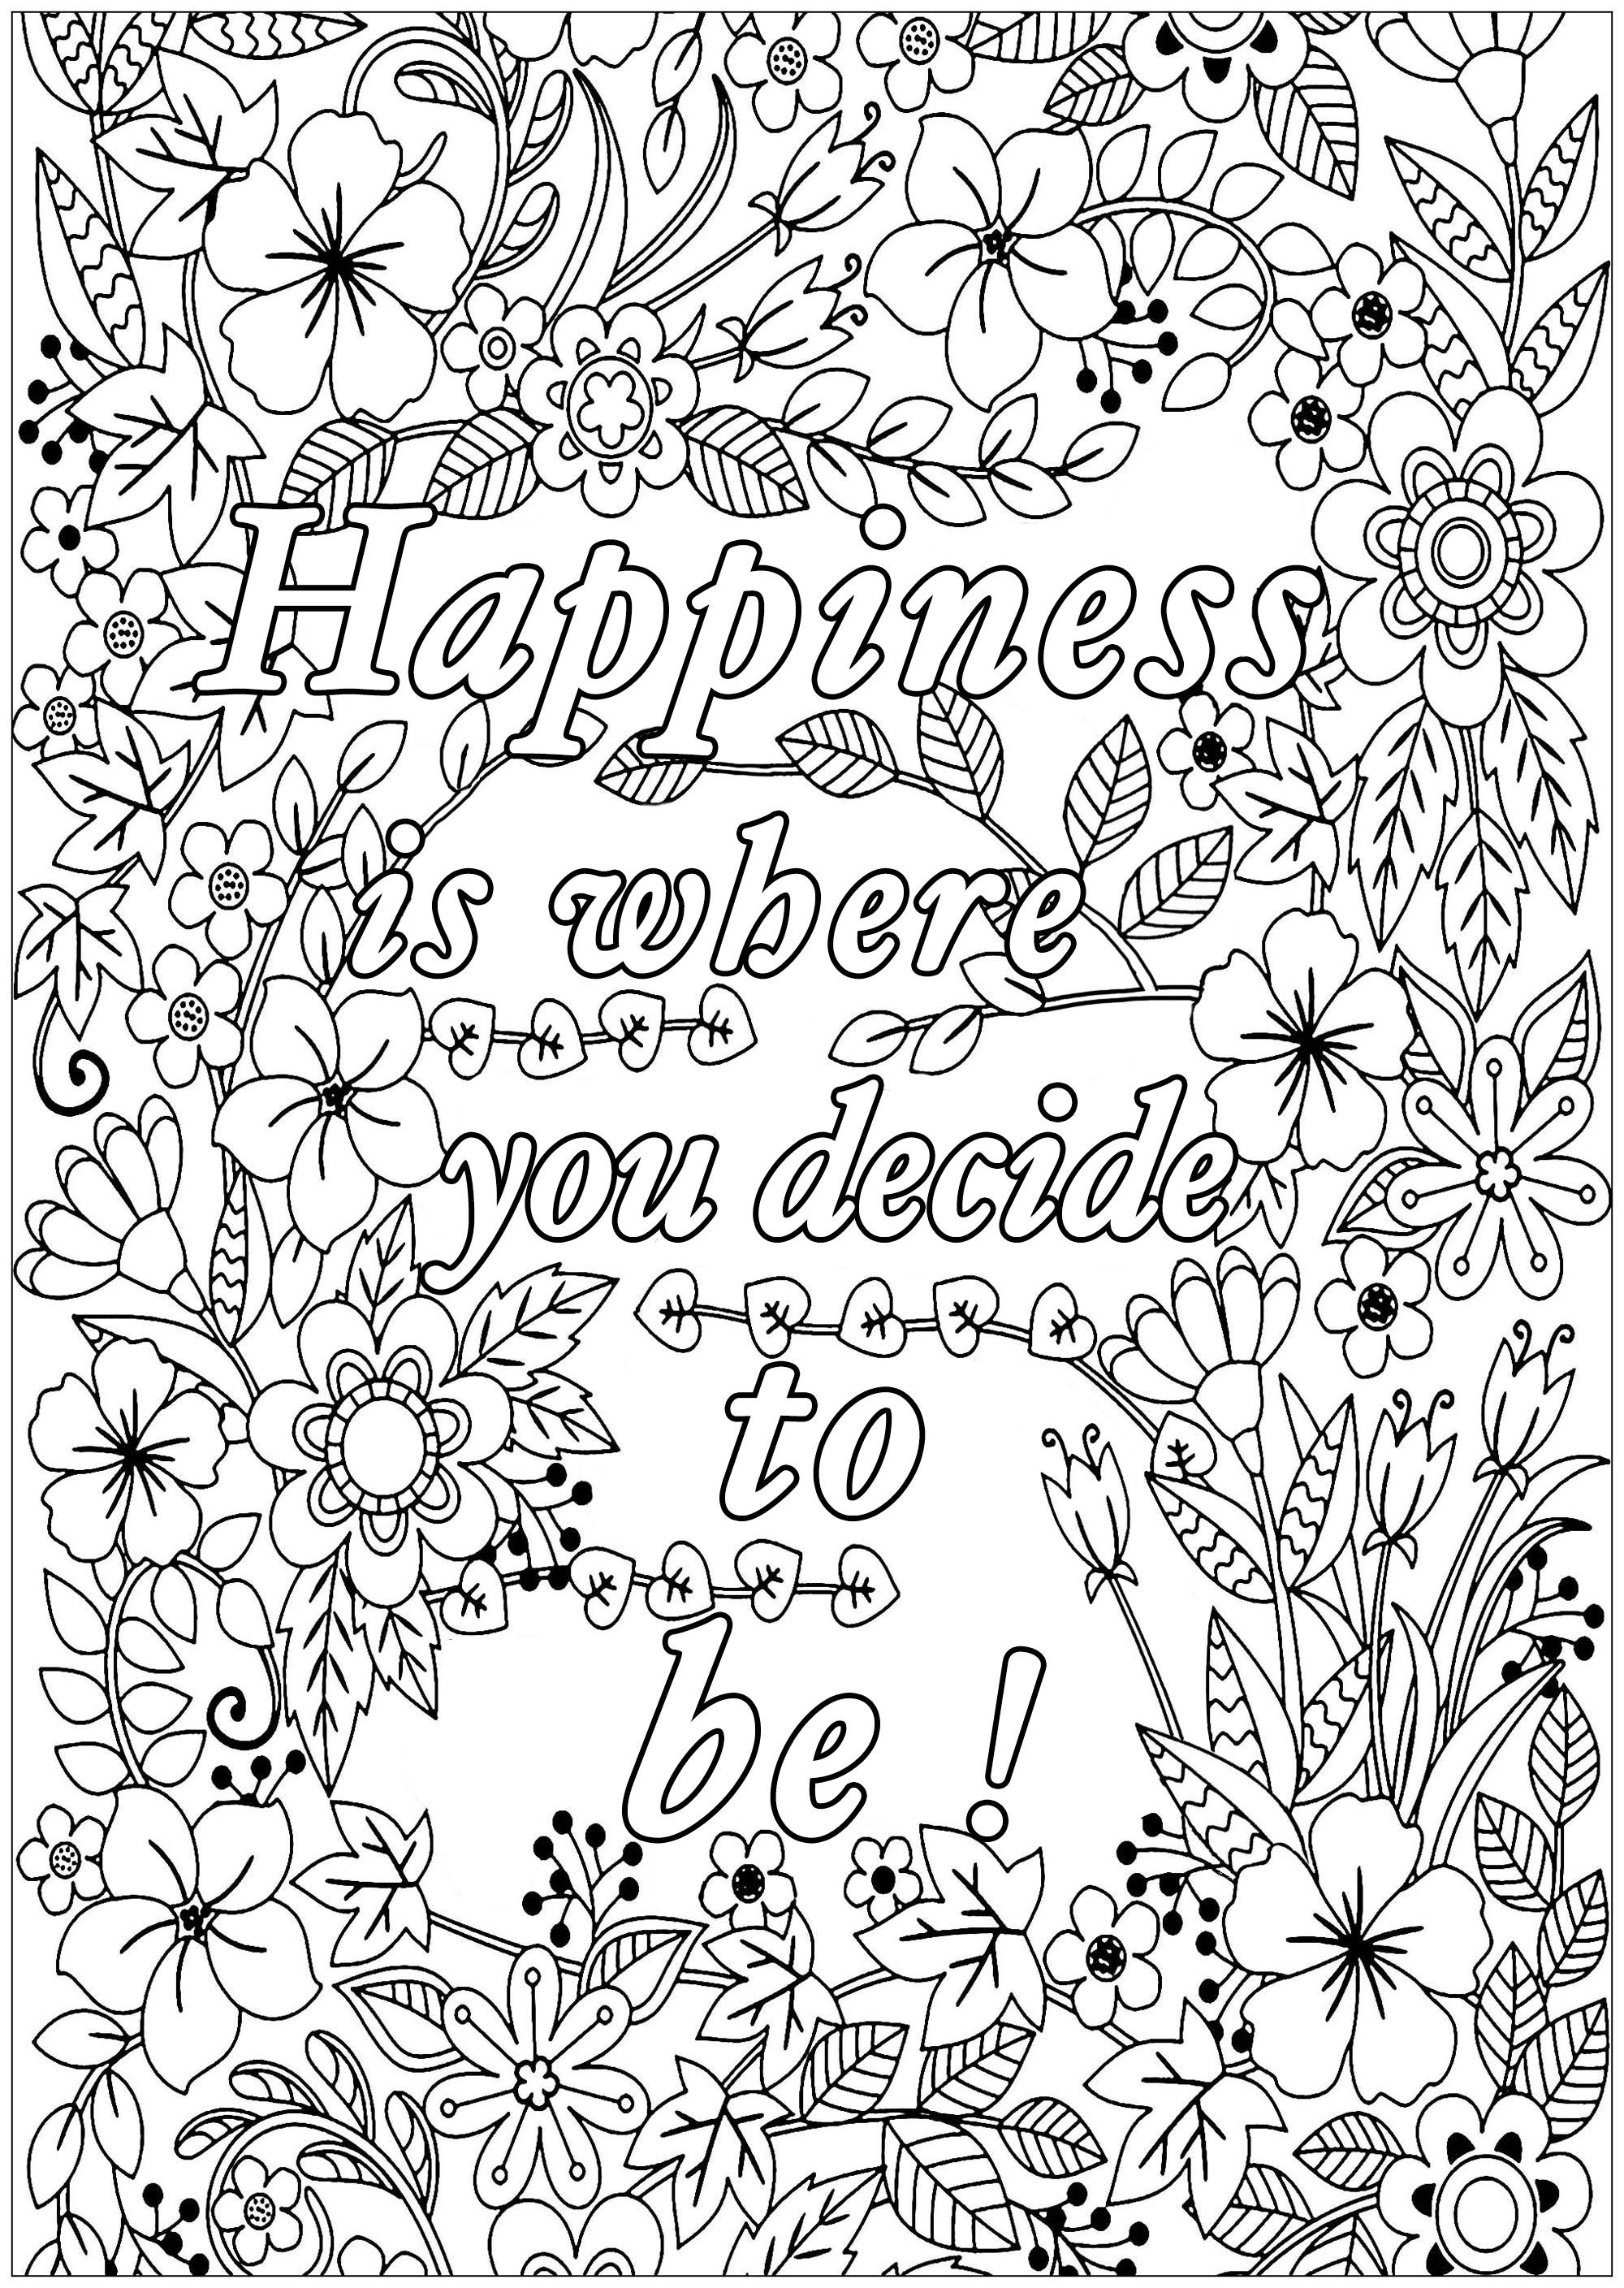 Pin On Happiness